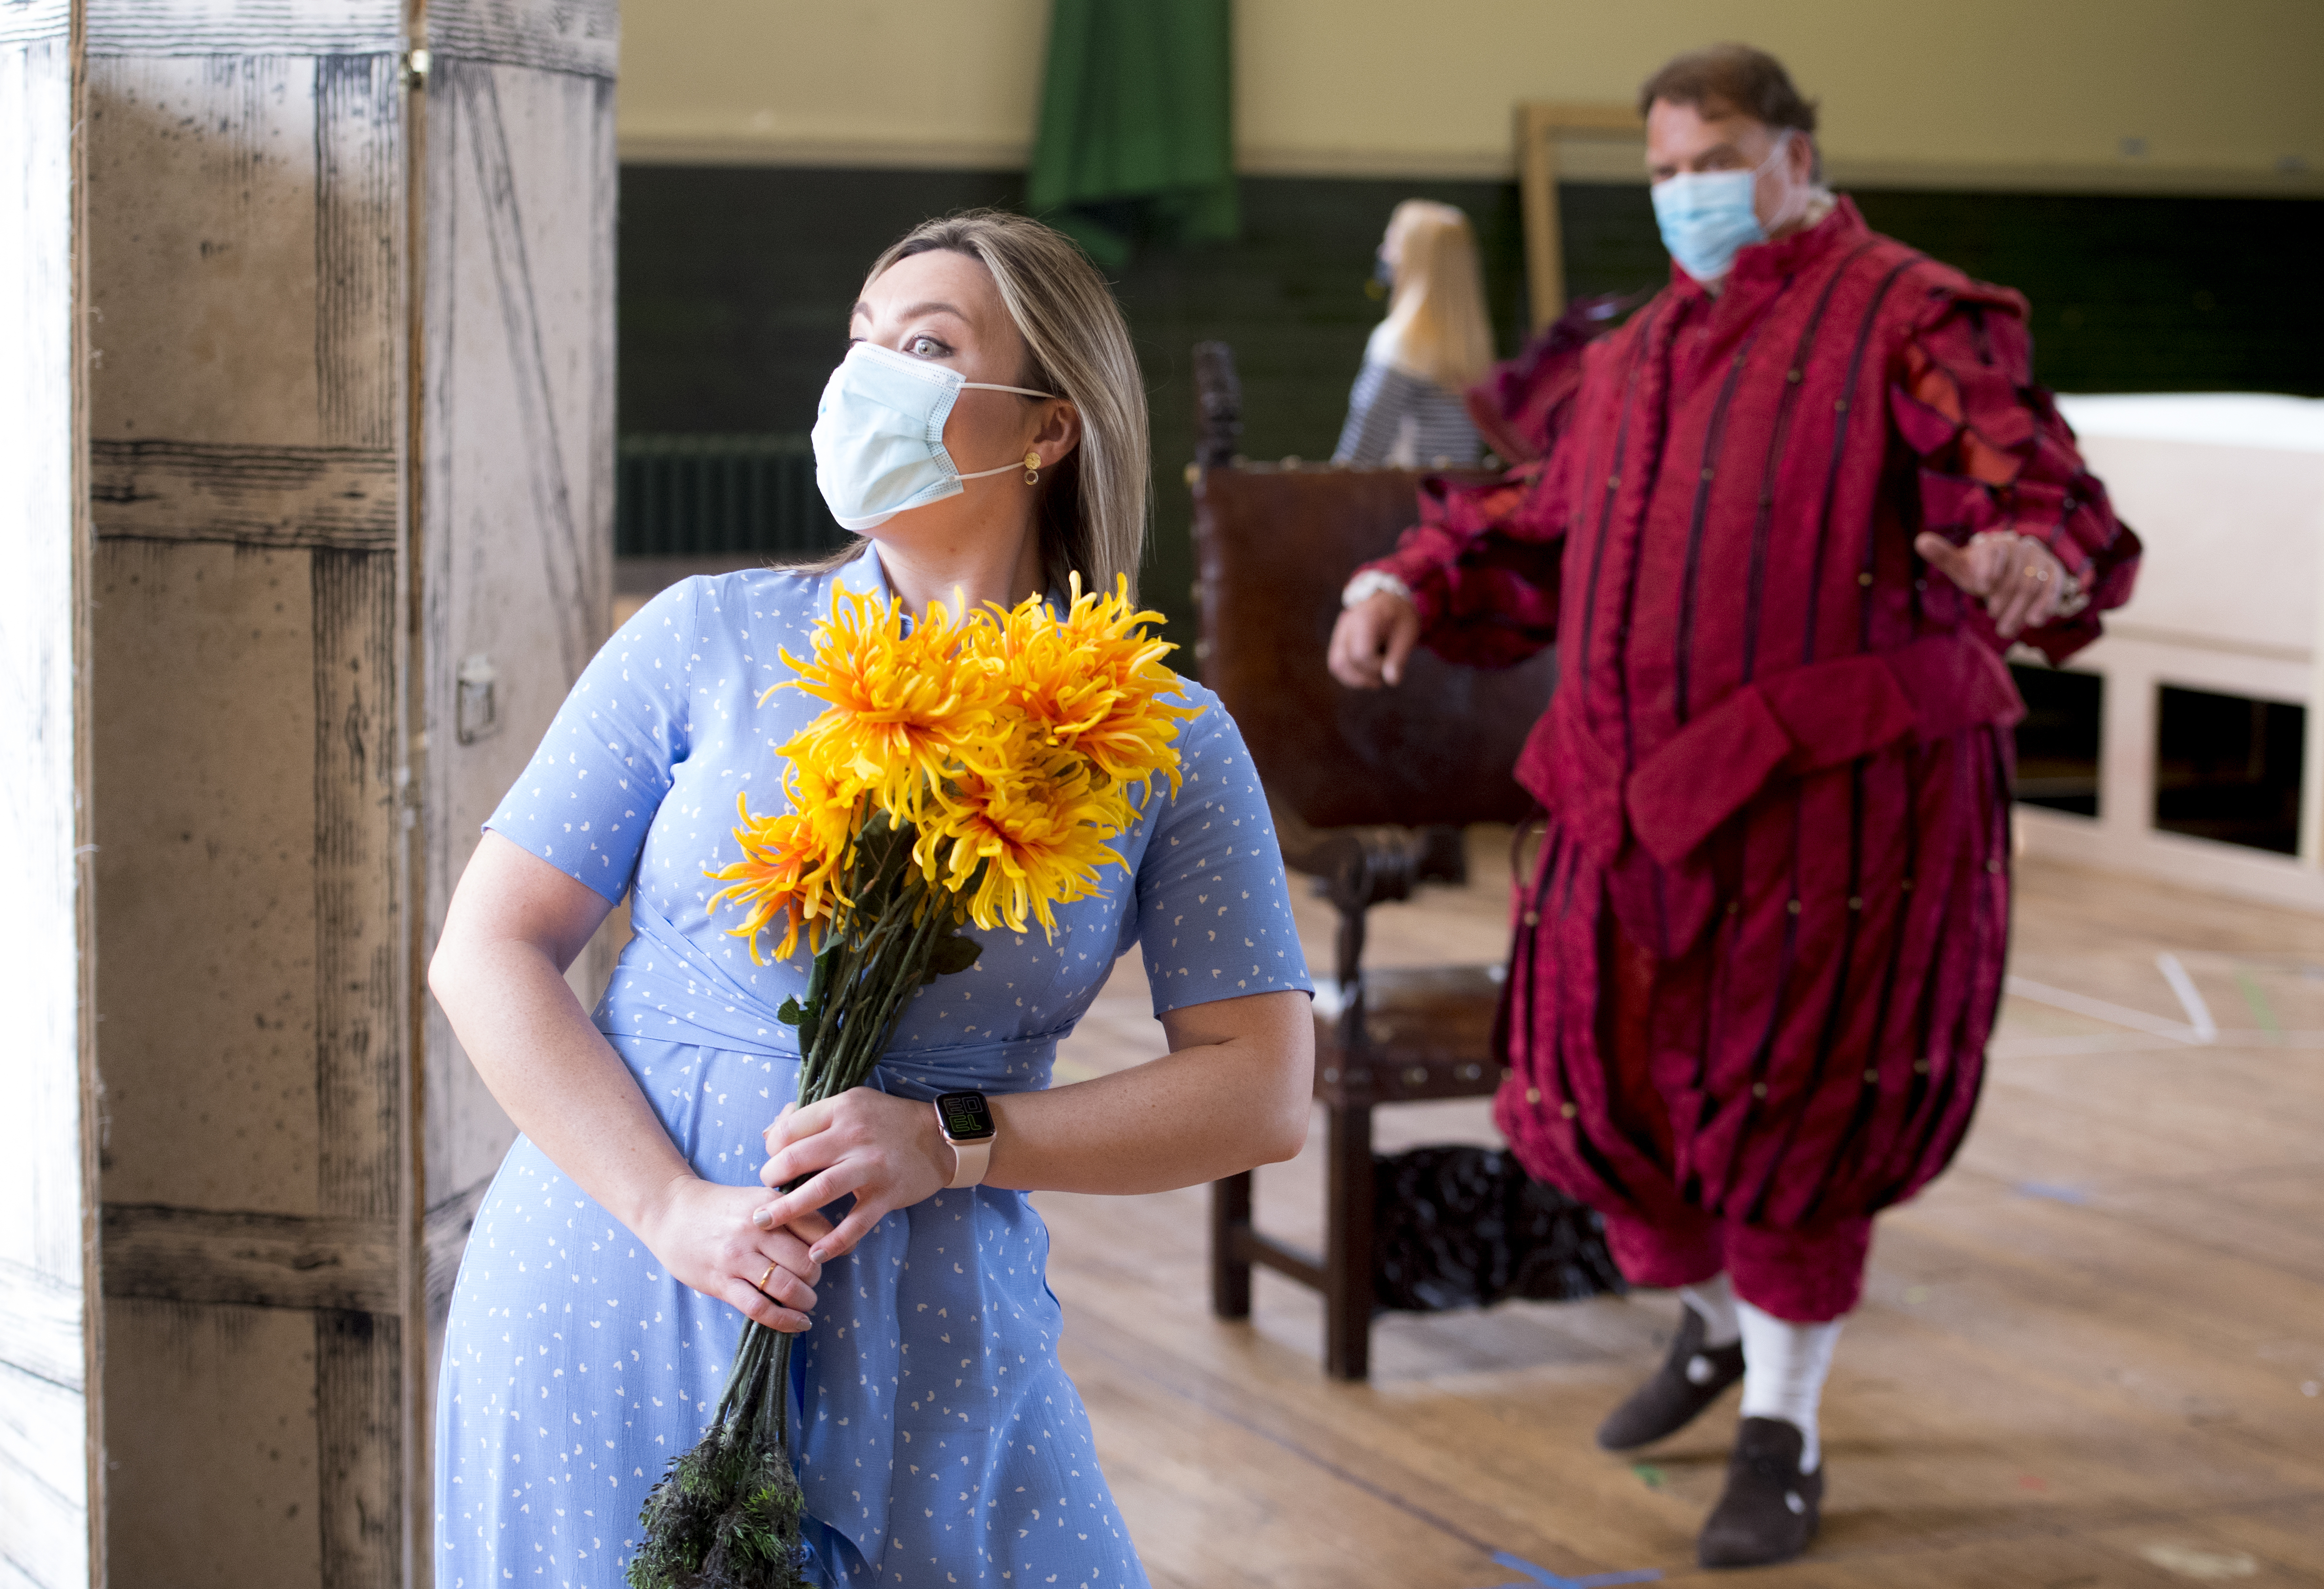 <p>Natalya Romaniw and Bryn Terfel are masked and socially distanced during a rehearsal of Falstaff for the Grange Park Opera. The rehearsals have been taking part at Alford House, in London, before the opera is seen from the 10th June-18 July. Picture date: Monday May 10, 2021.</p>